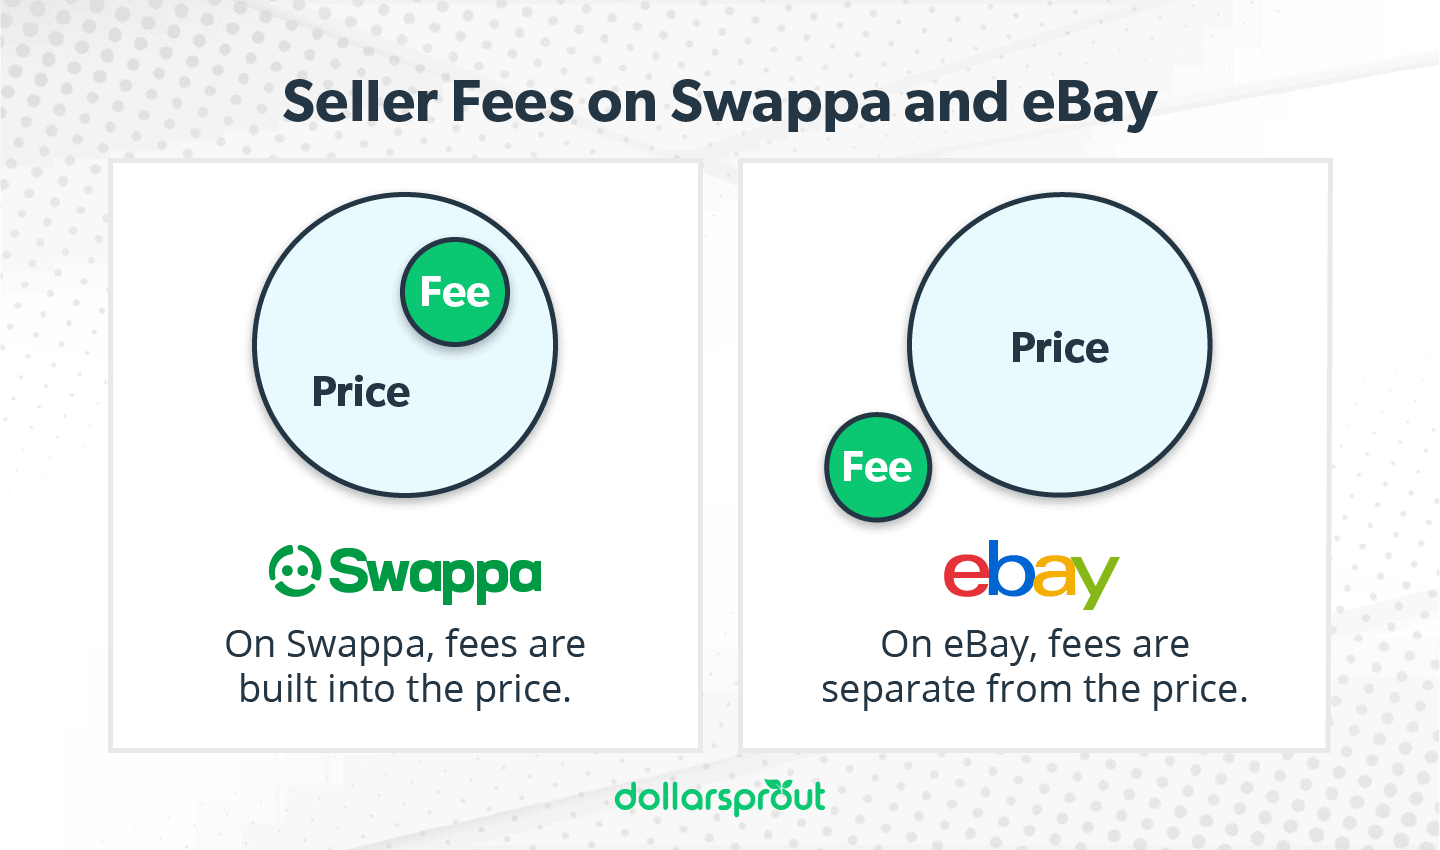 swappa and ebay fees comparison